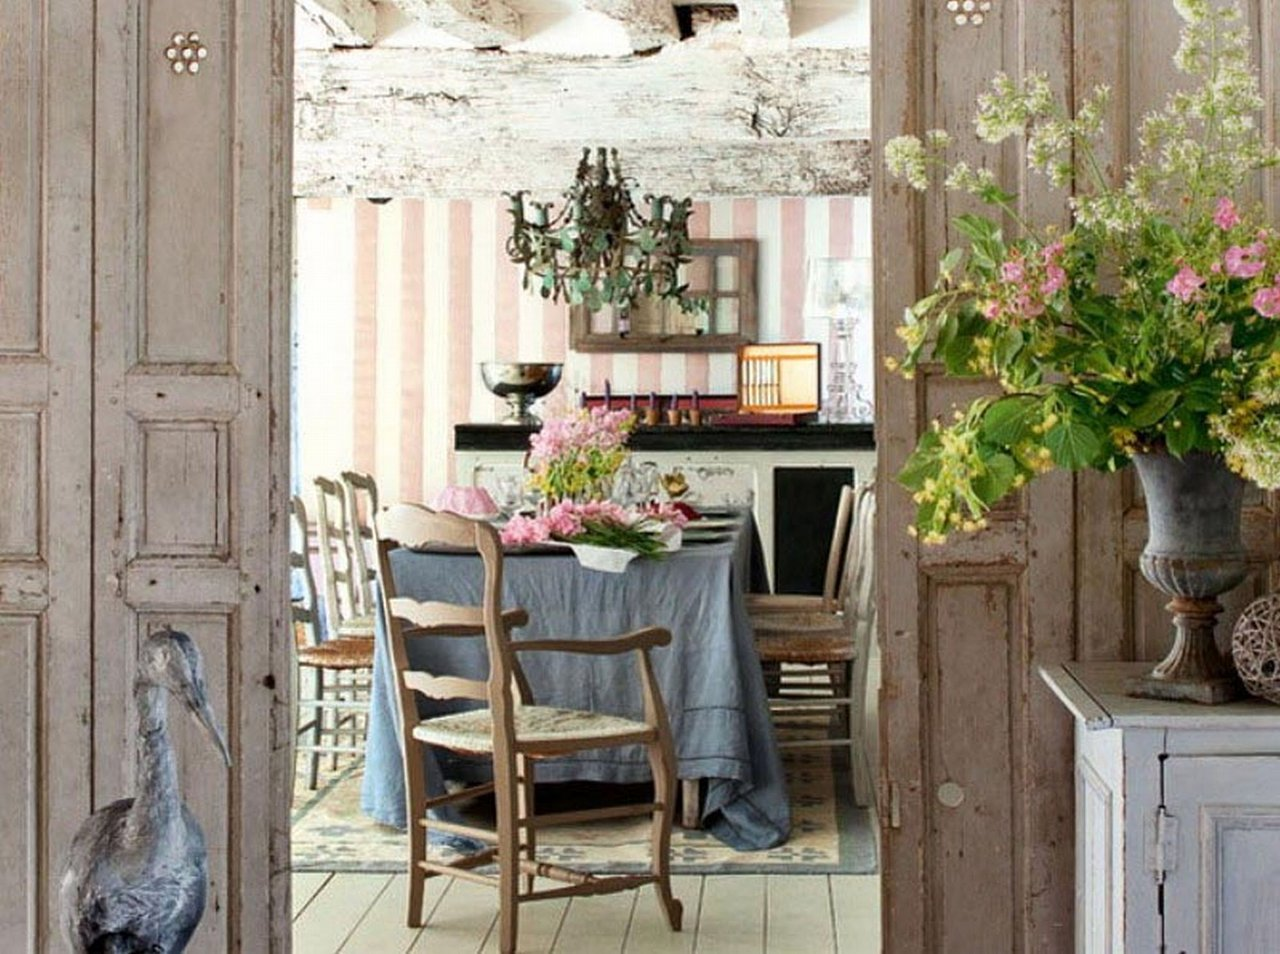 Fullsize Of Rustic Country Home Ideas